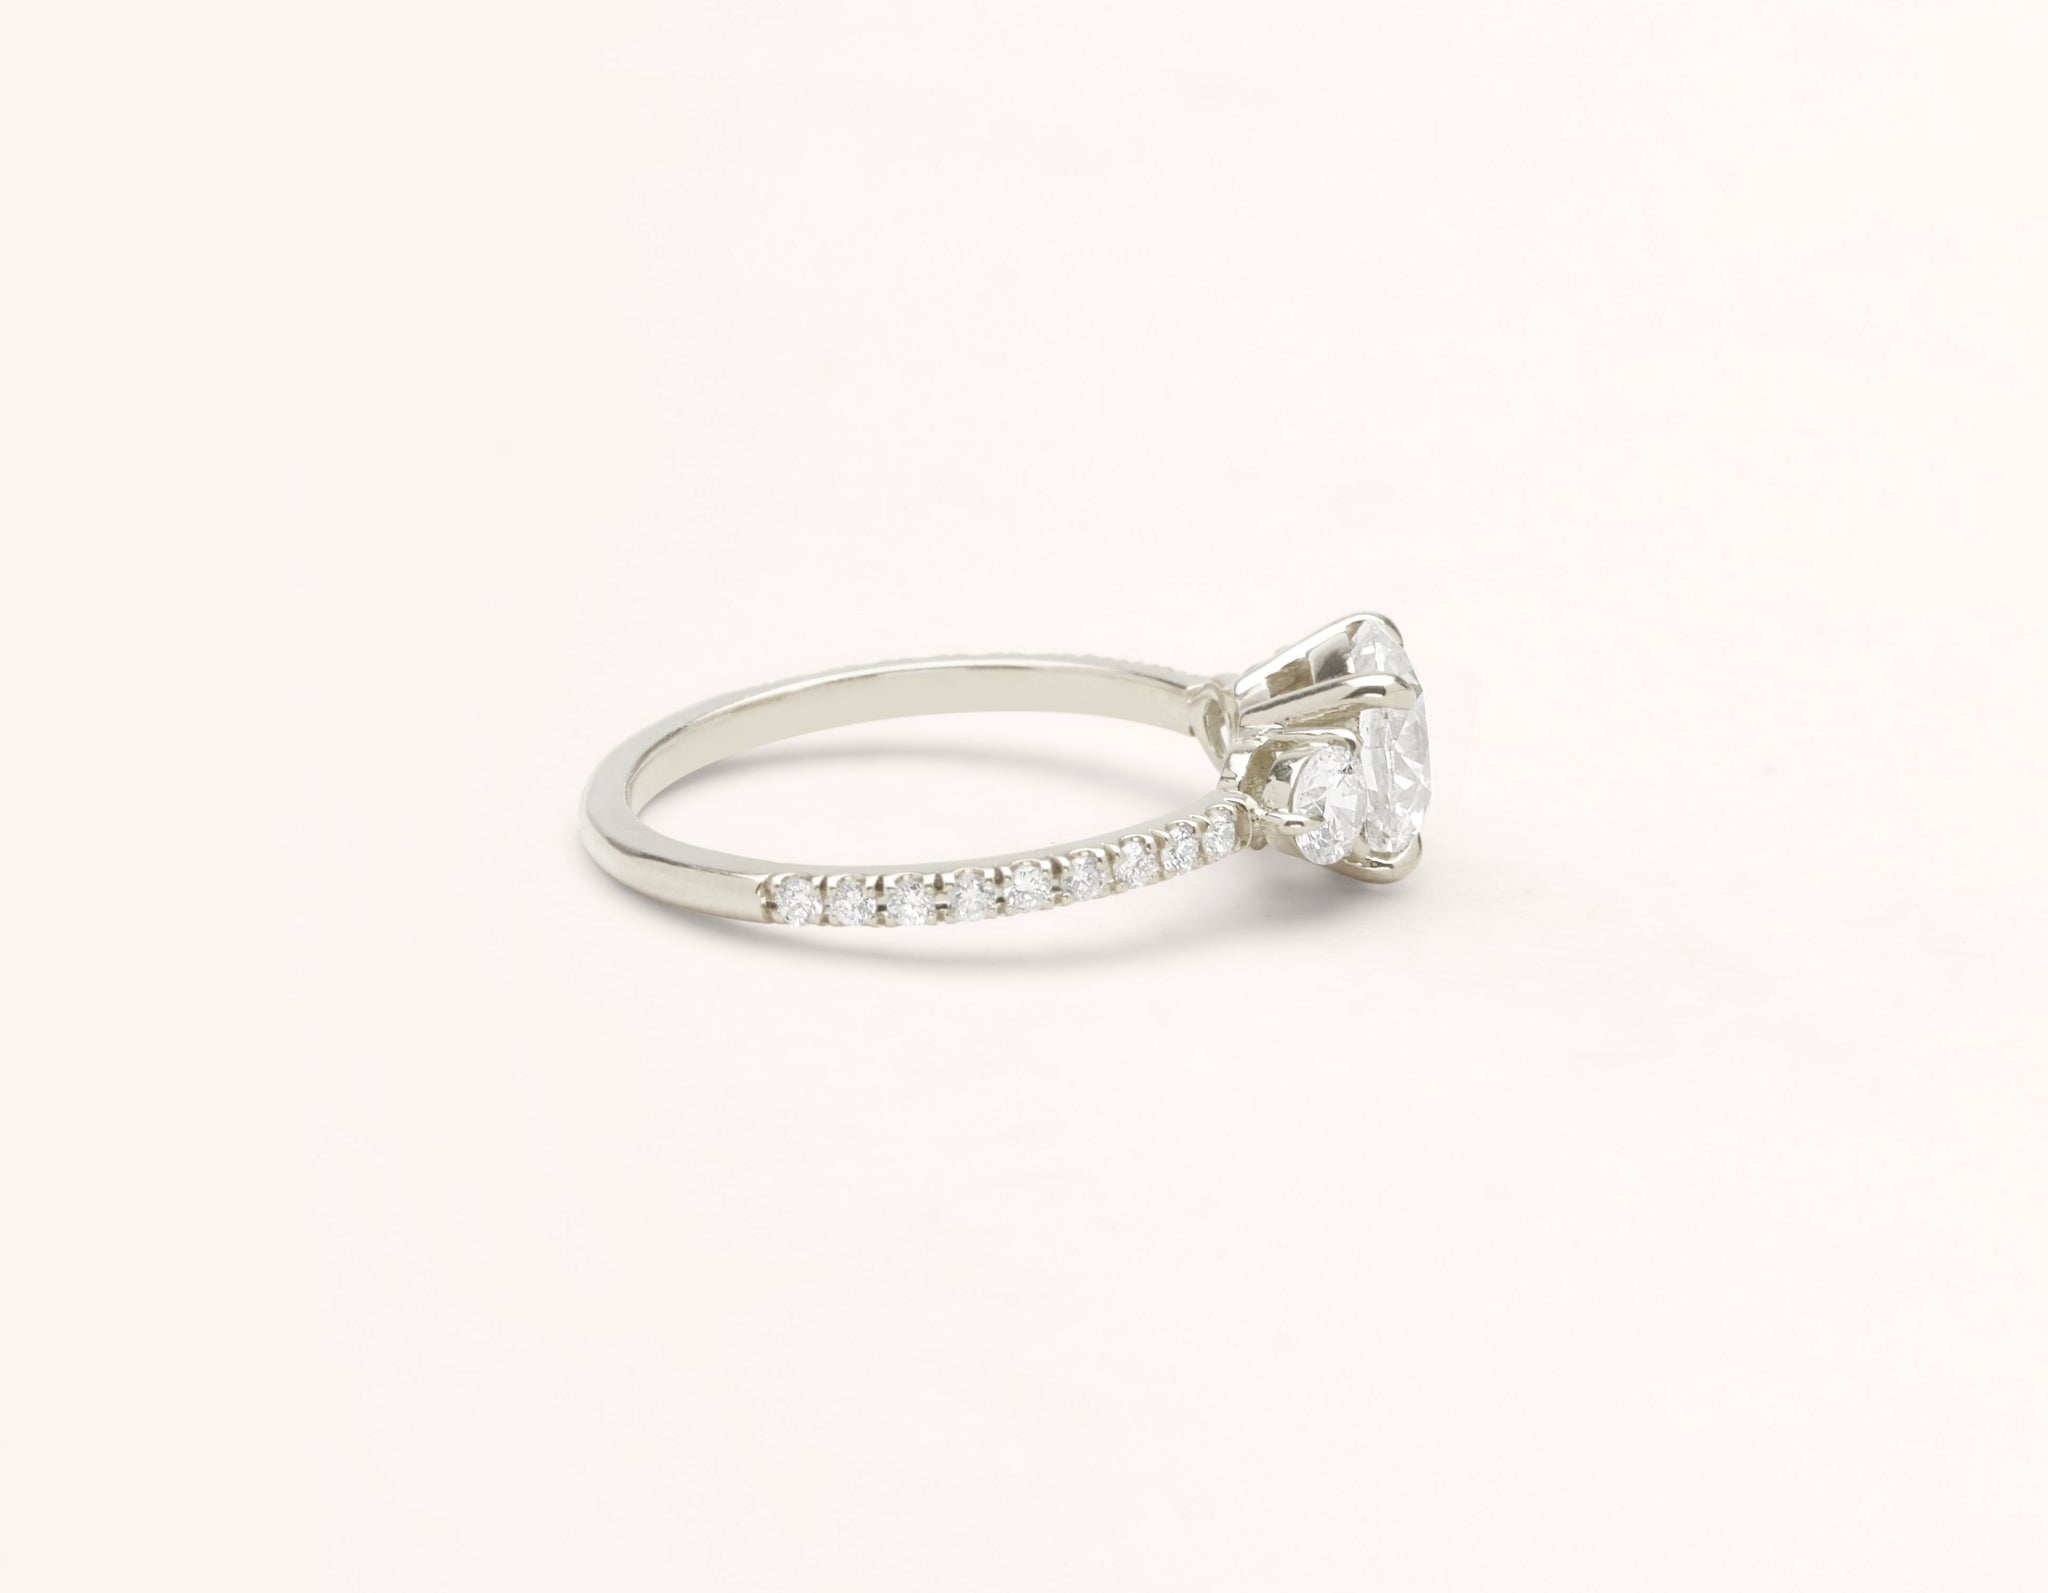 Simple modern 18k solid white gold 1 carat Three Stone diamond pave engagement ring Vrai & Oro